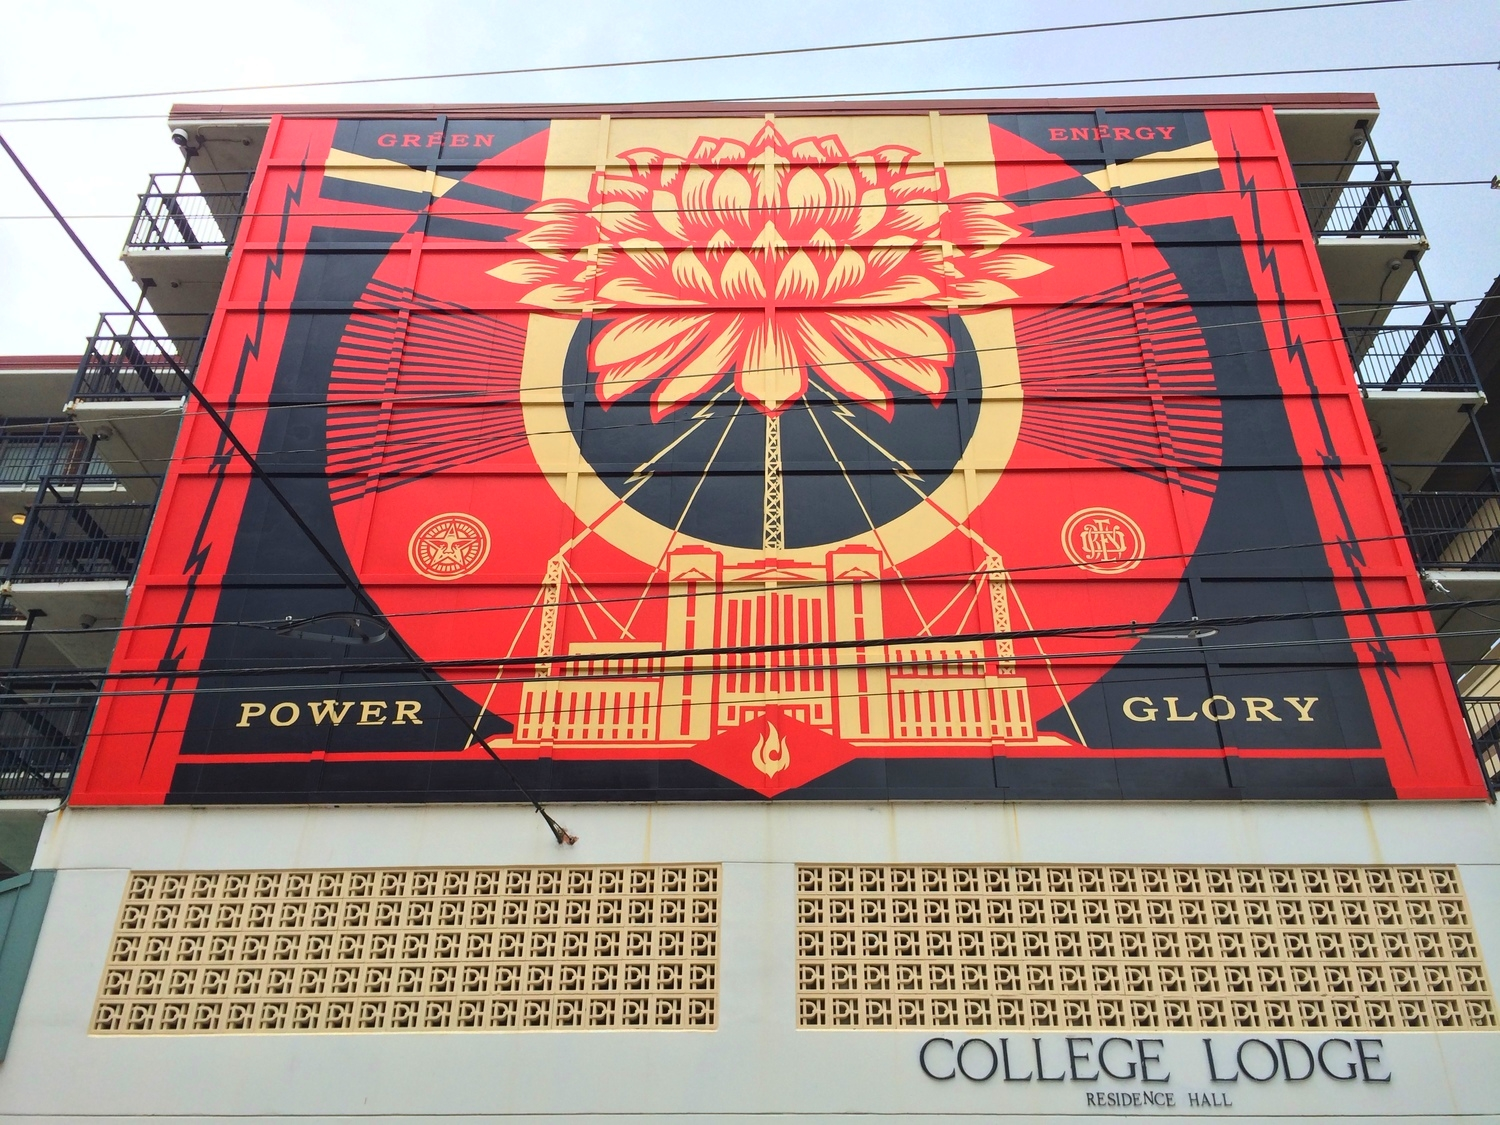 Green Power mural at the College Lodge